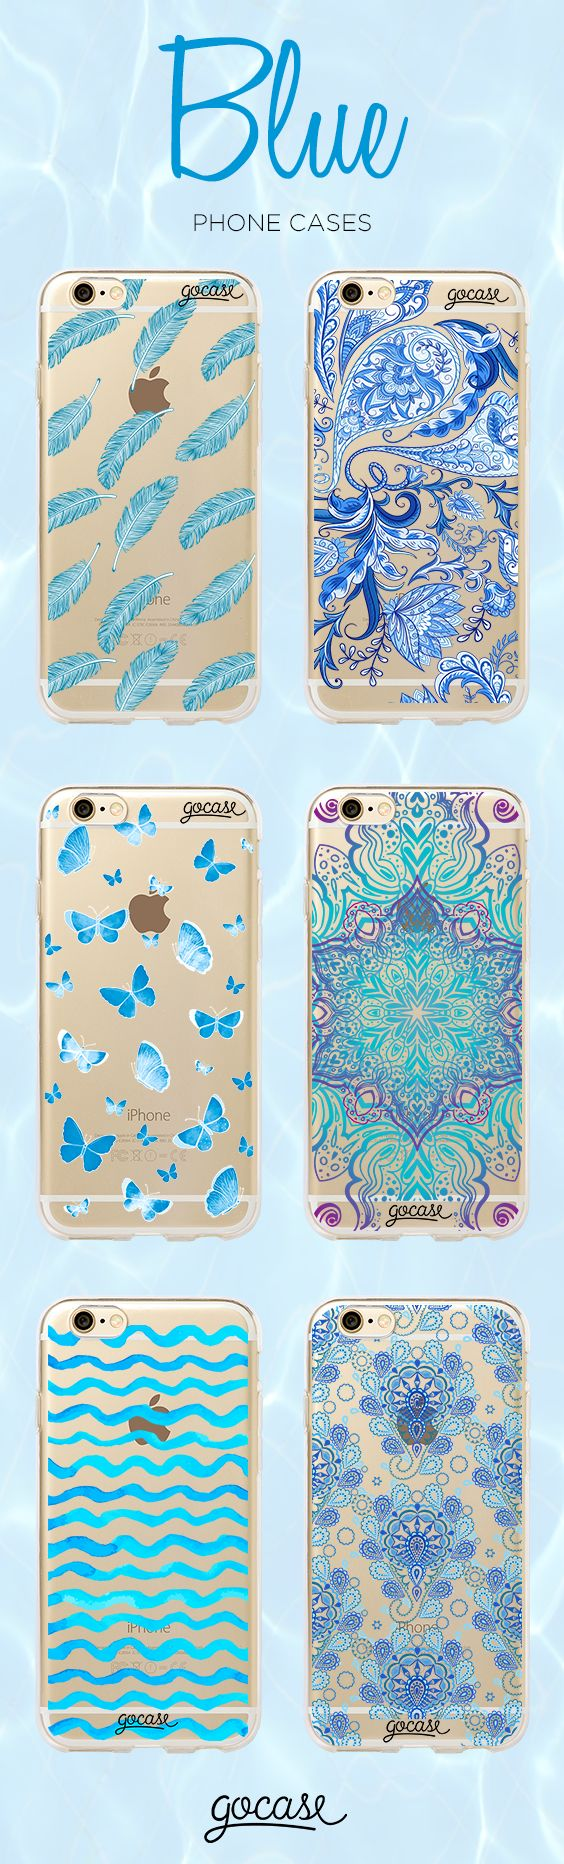 Cell Phone Cases - Buy now at: www.shop-gocase.com - Welcome to the Cell Phone Cases Store, where you'll find great prices on a wide range of different cases for your cell phone (IPhone - Samsung)